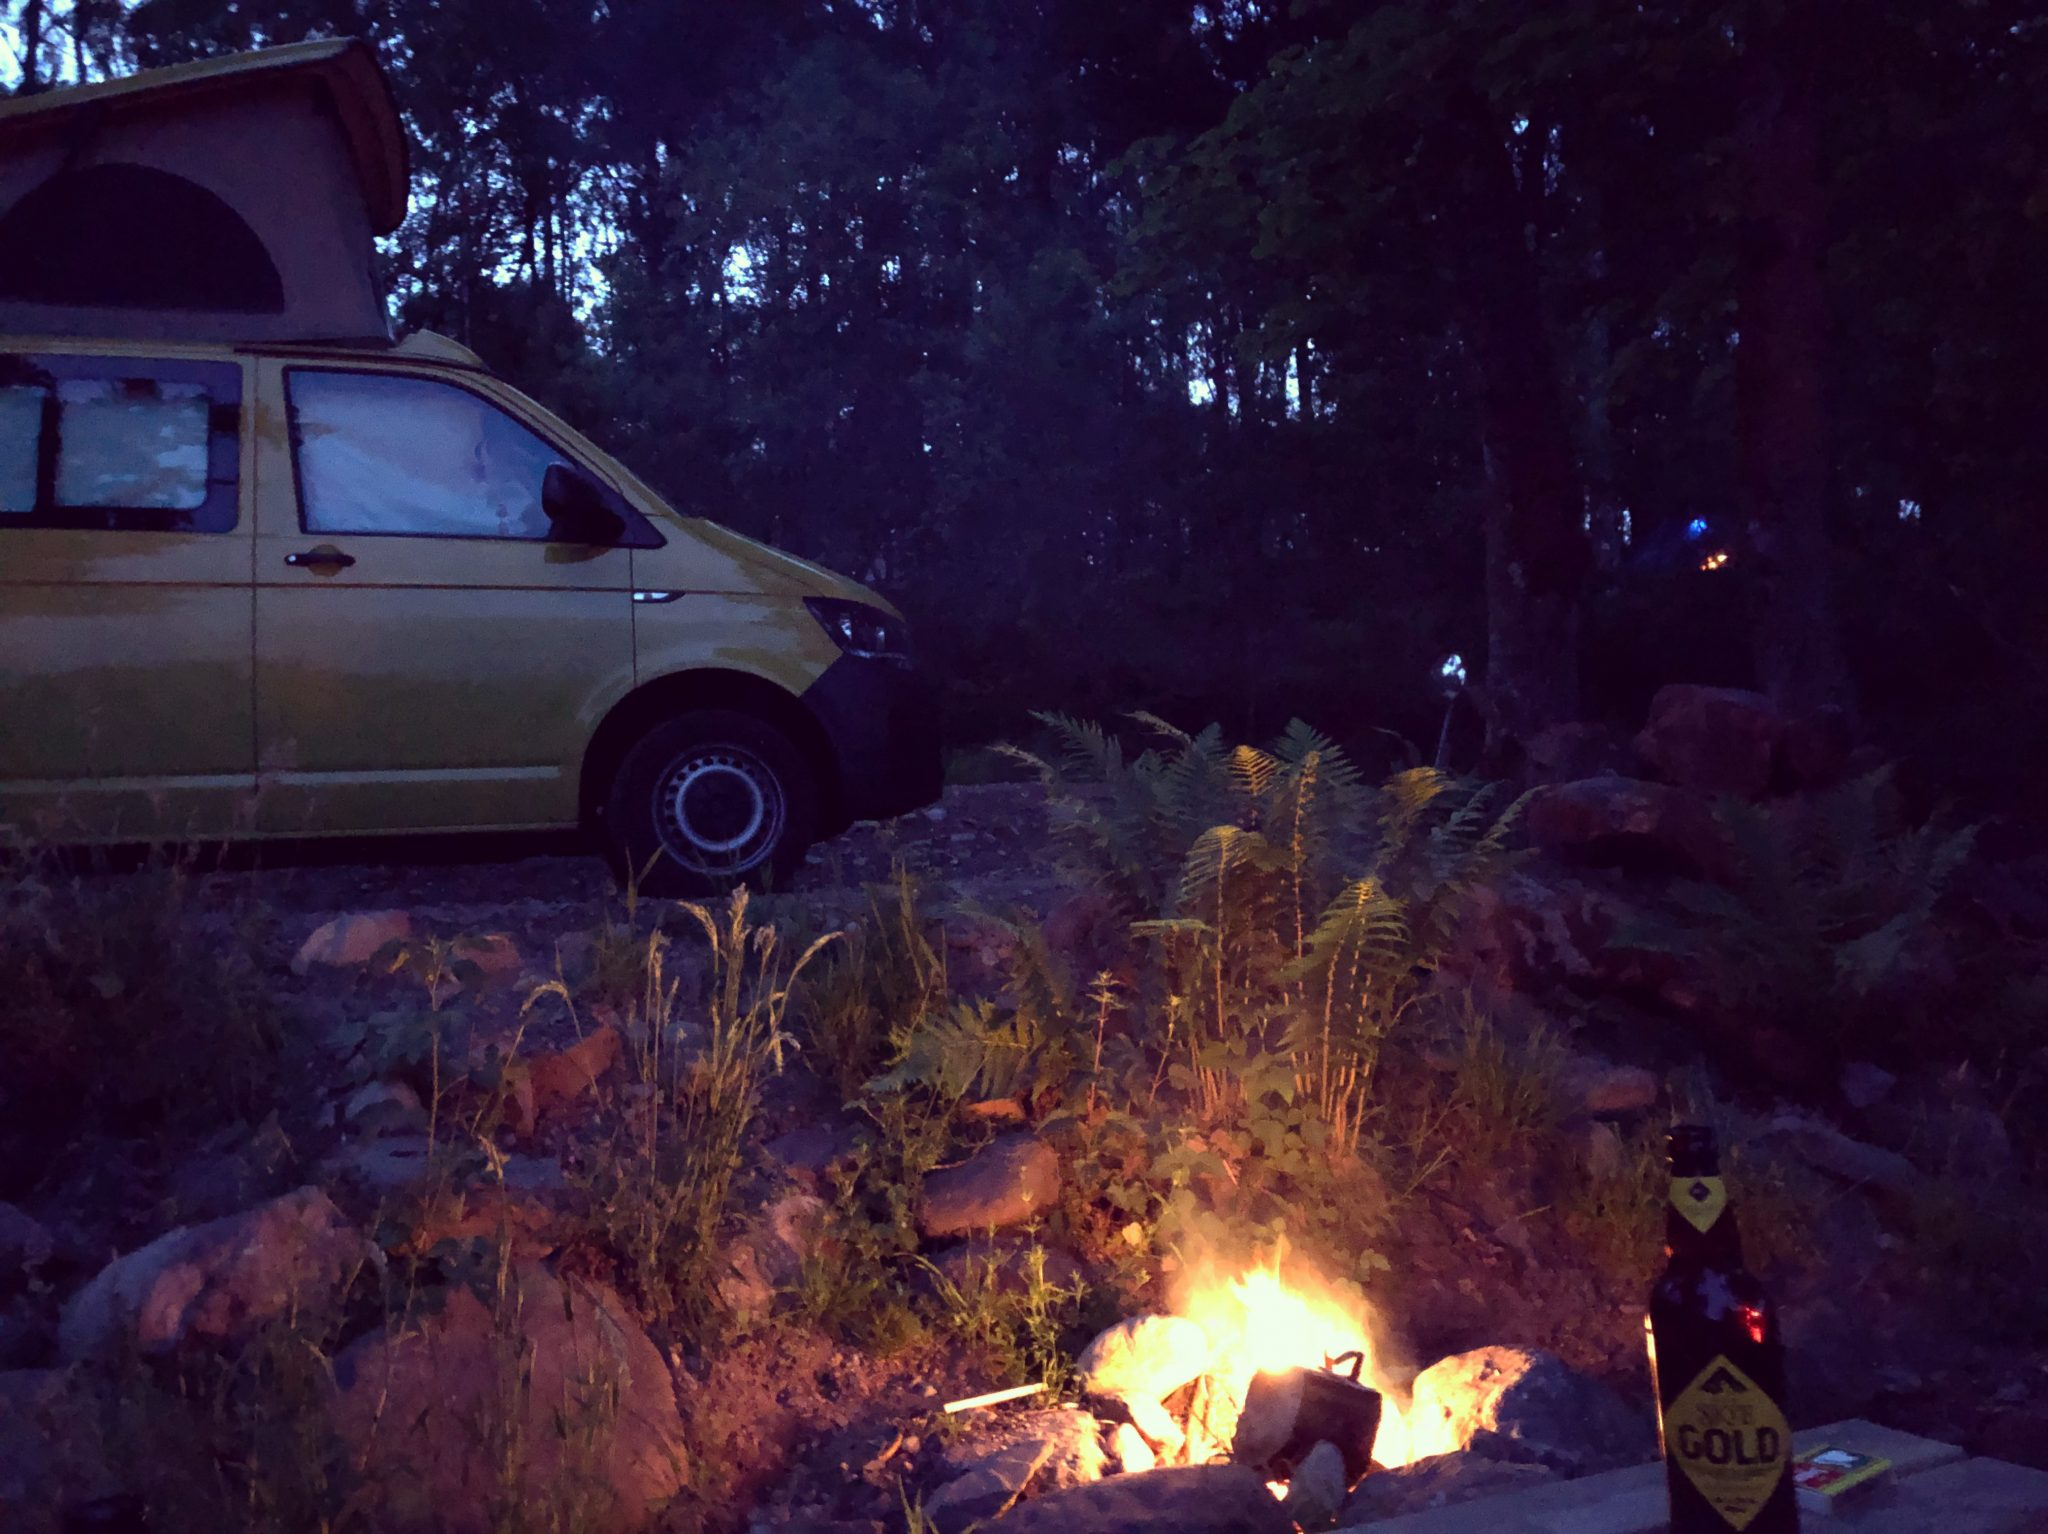 campsites with fires